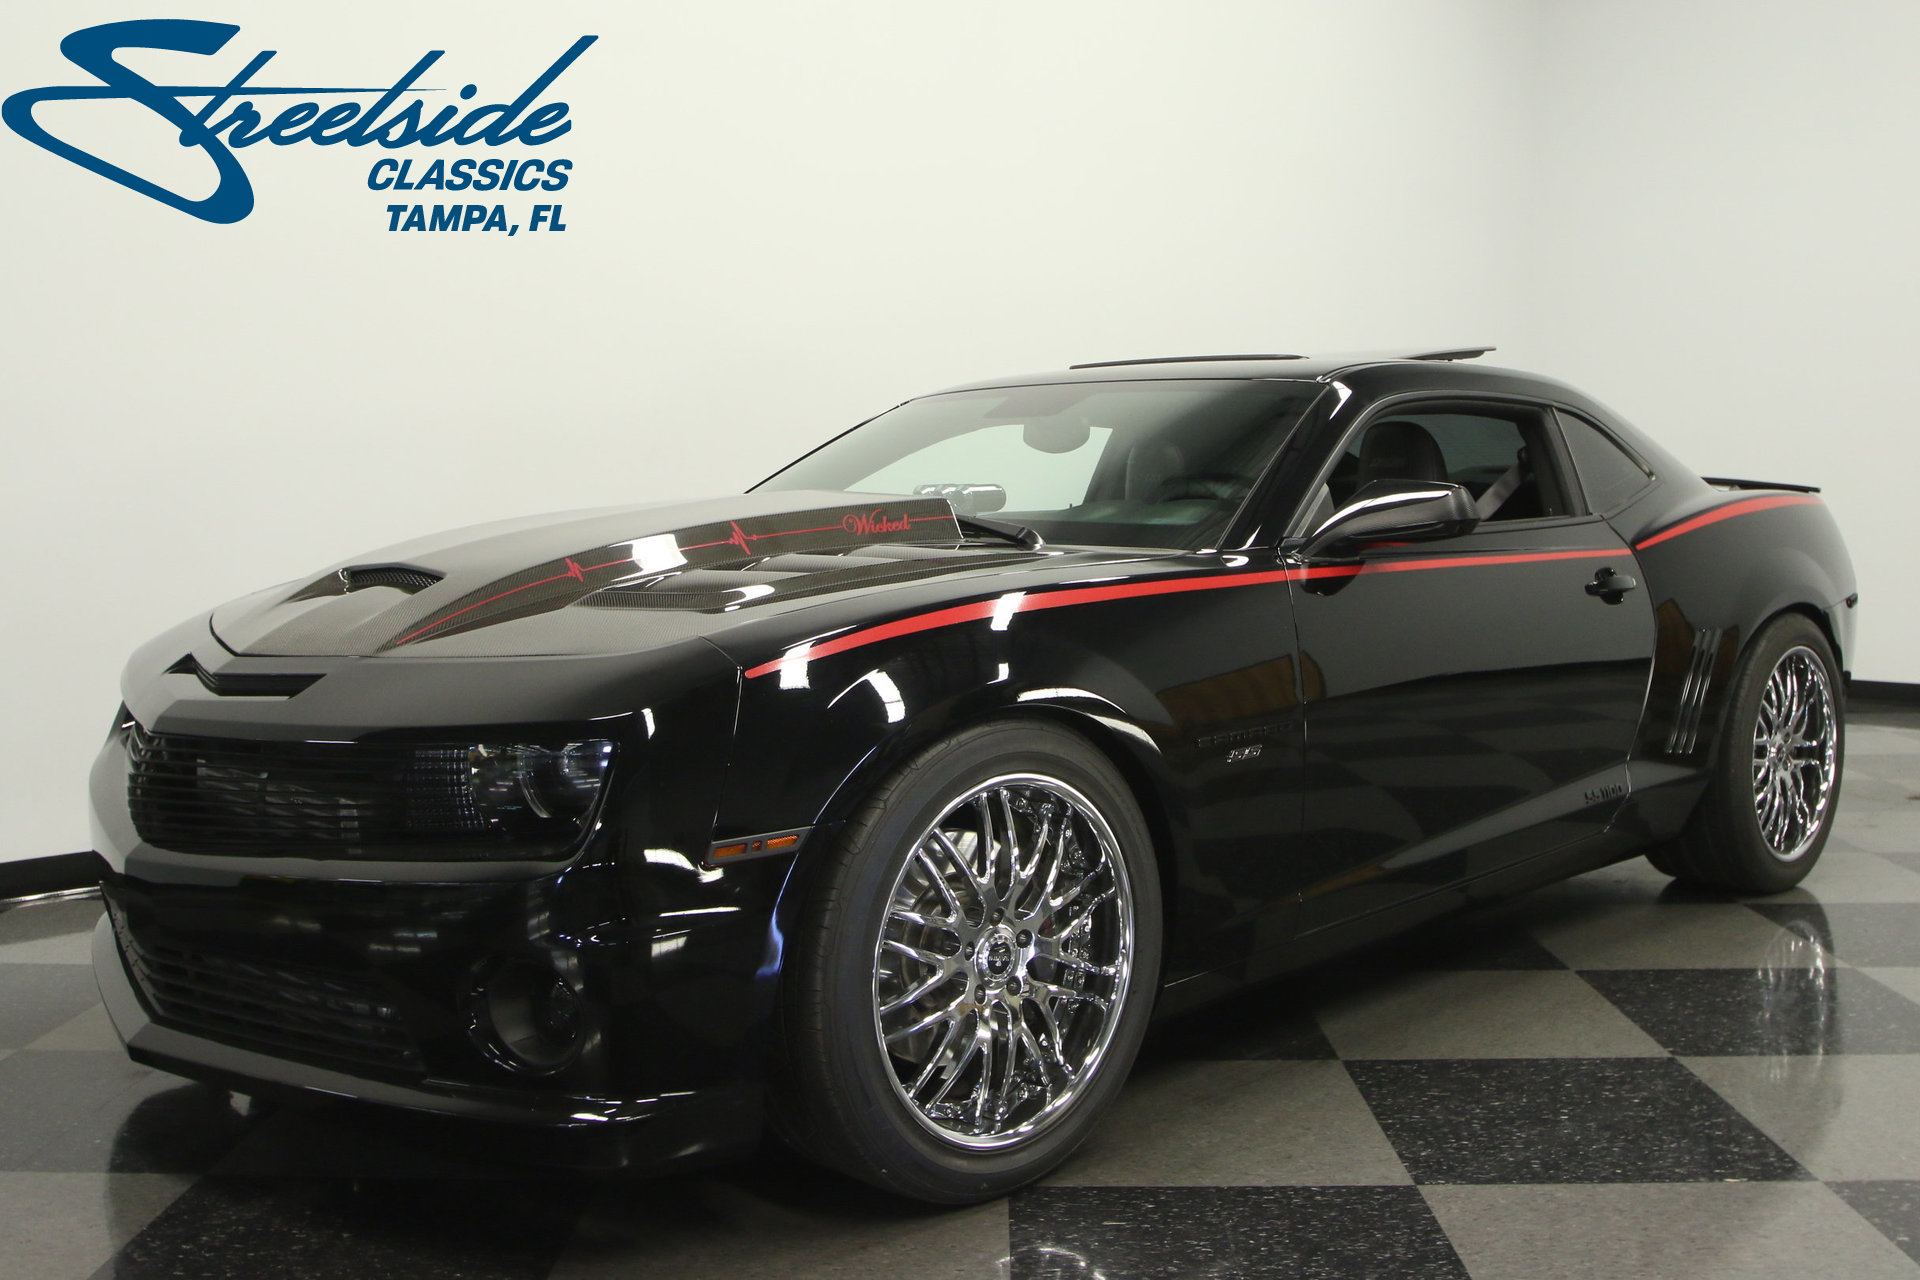 2010 chevrolet camaro ss supercharged for sale 49295 mcg. Black Bedroom Furniture Sets. Home Design Ideas